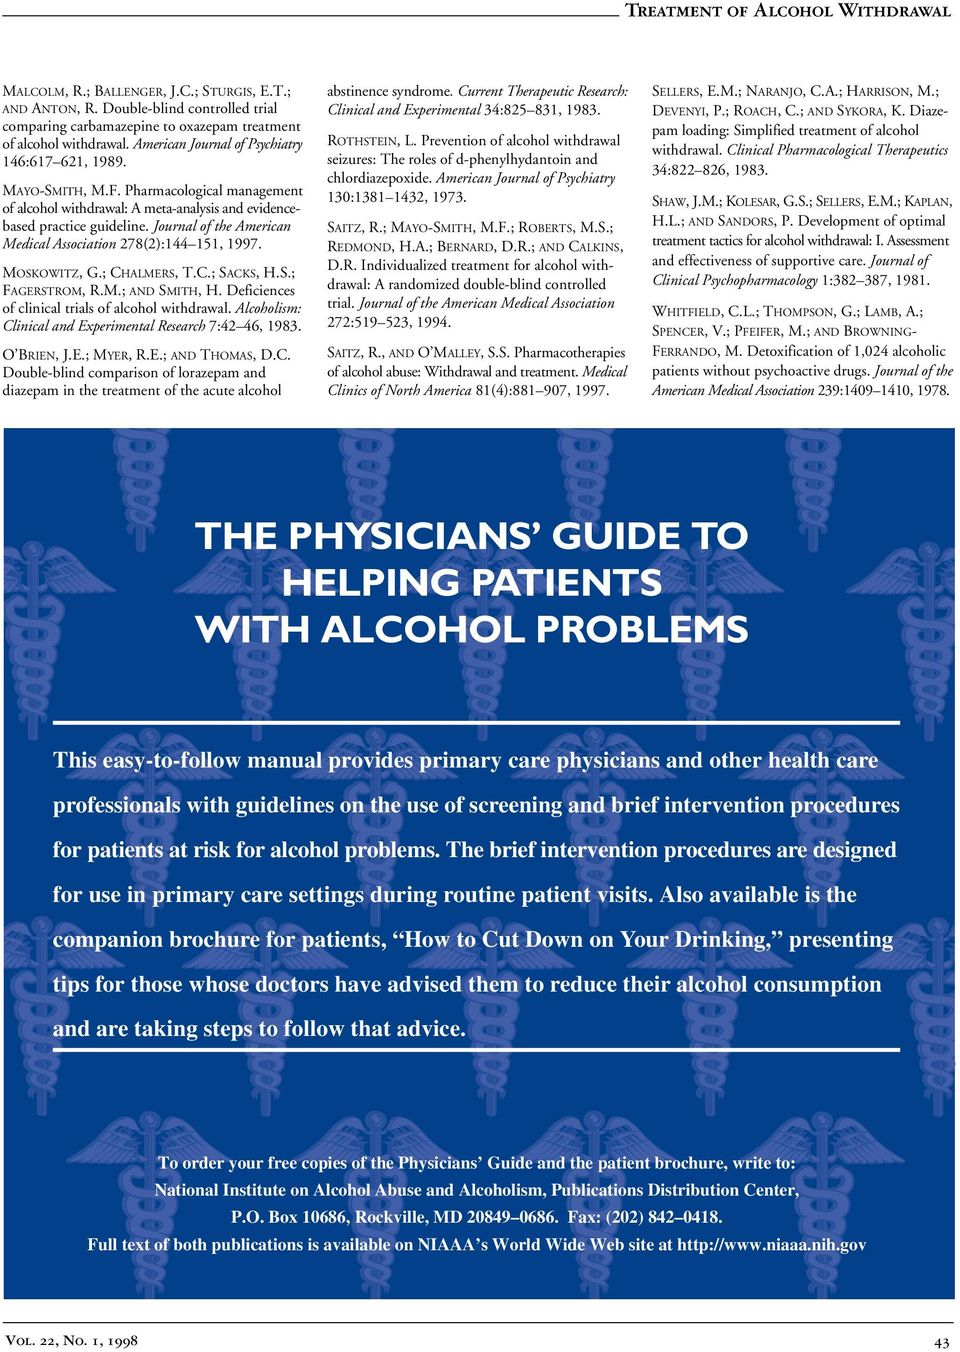 Journal of the American Medical Association 278(2):144 151, 1997. MOSKOWITZ, G.; CHALMERS, T.C.; SACKS, H.S.; FAGERSTROM, R.M.; AND SMITH, H. Deficiences of clinical trials of alcohol withdrawal.